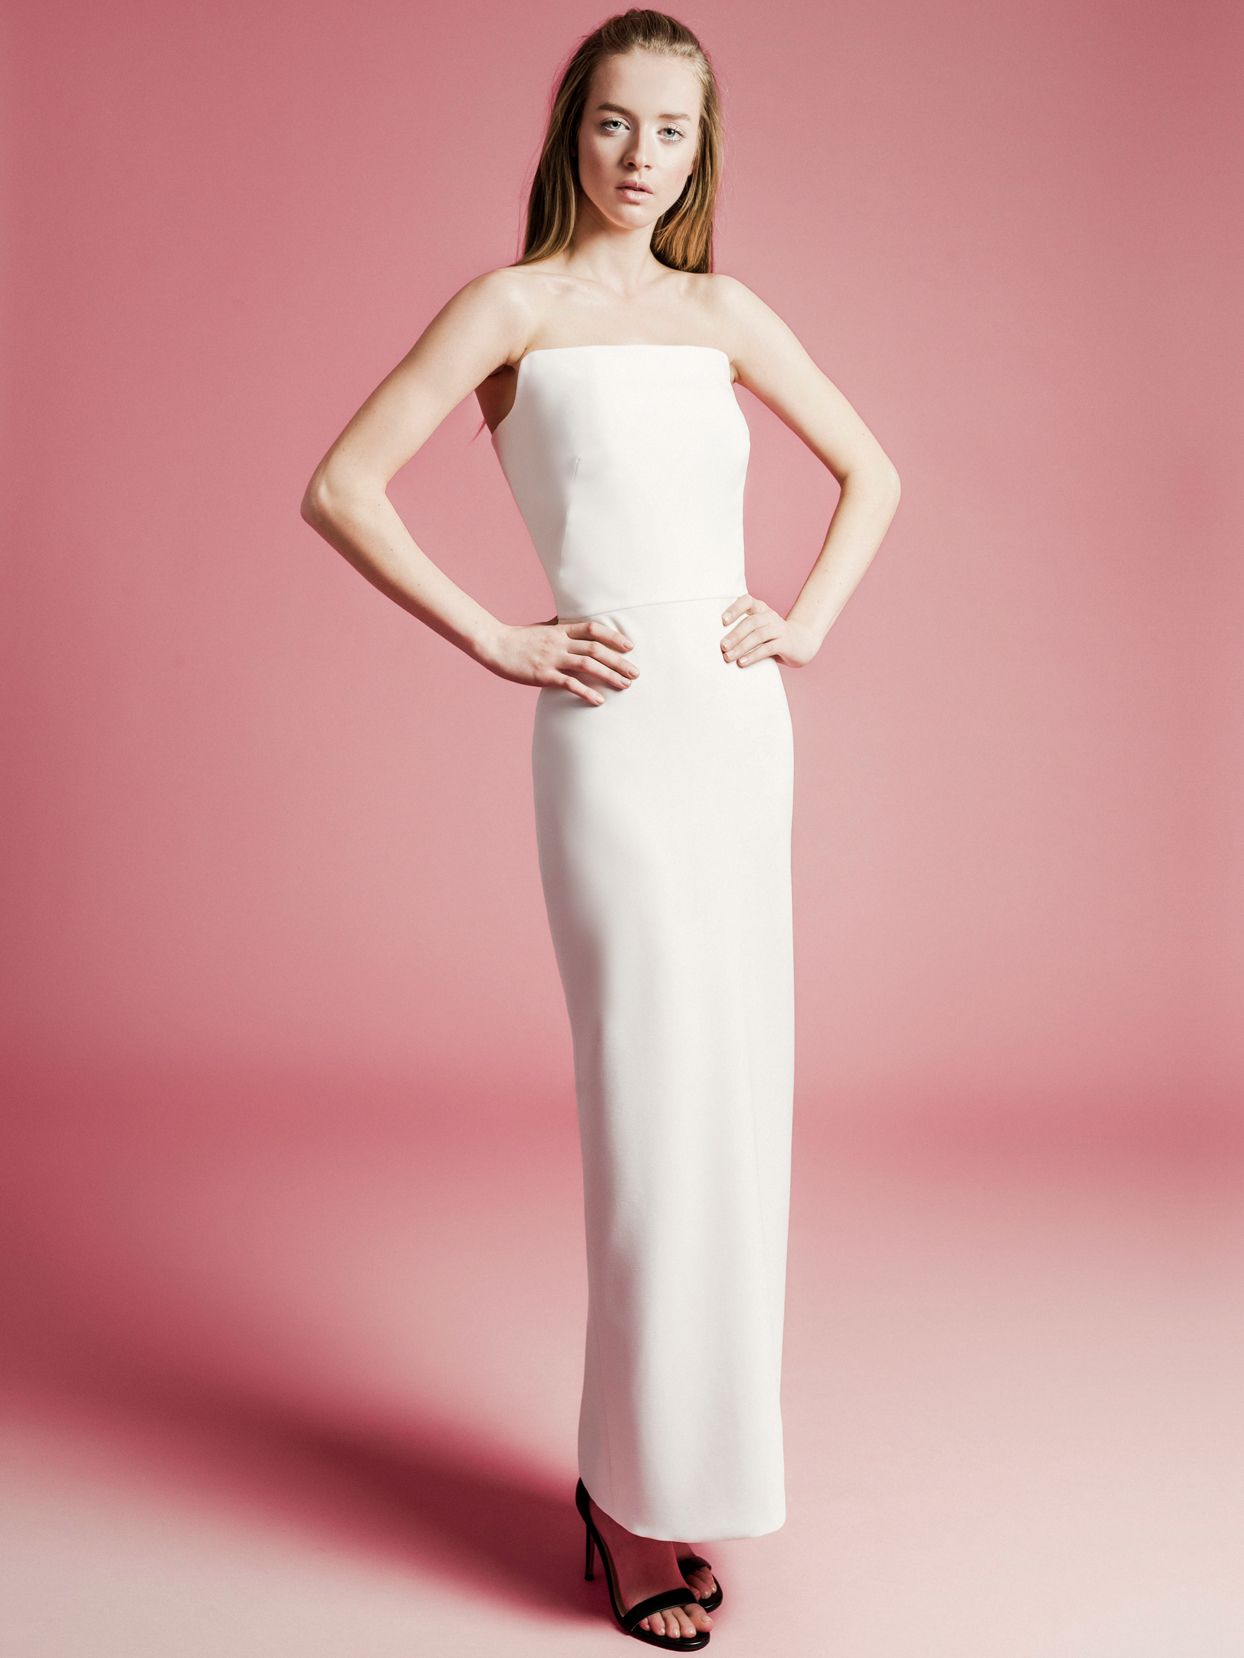 Sophie Et Voilà straight across strapless wedding dress spring 2021